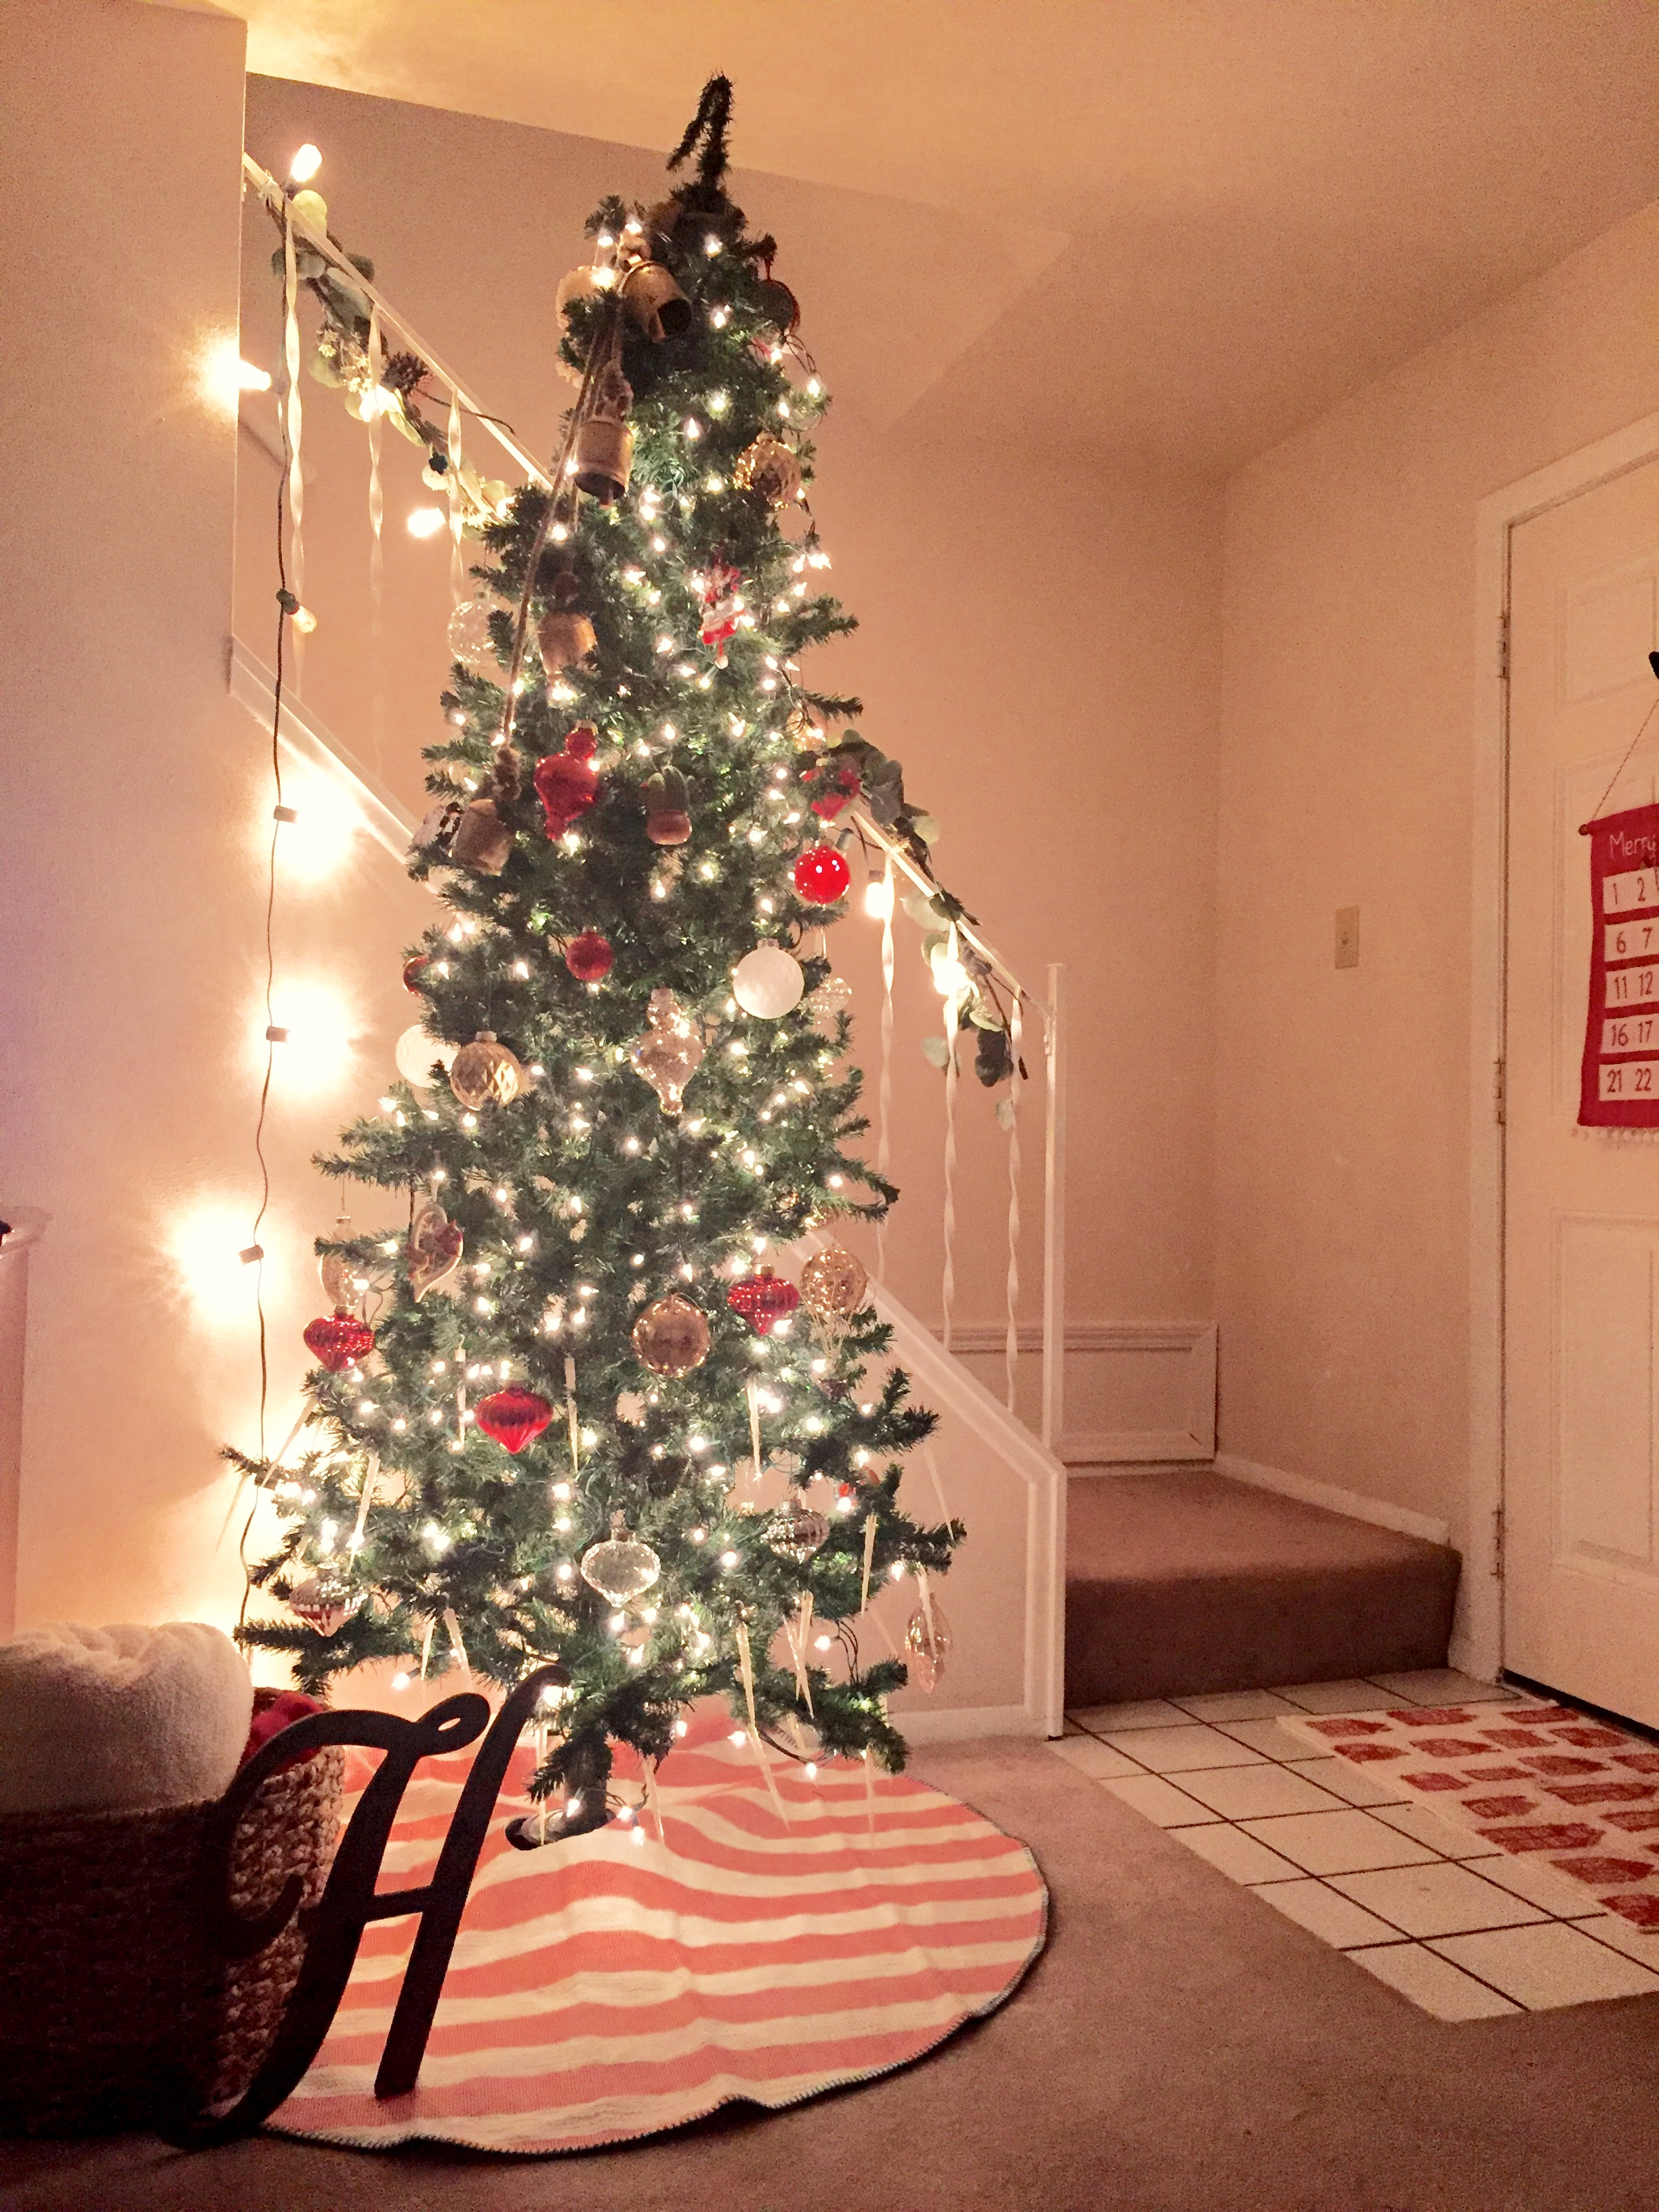 Copy of Our First Christmas.